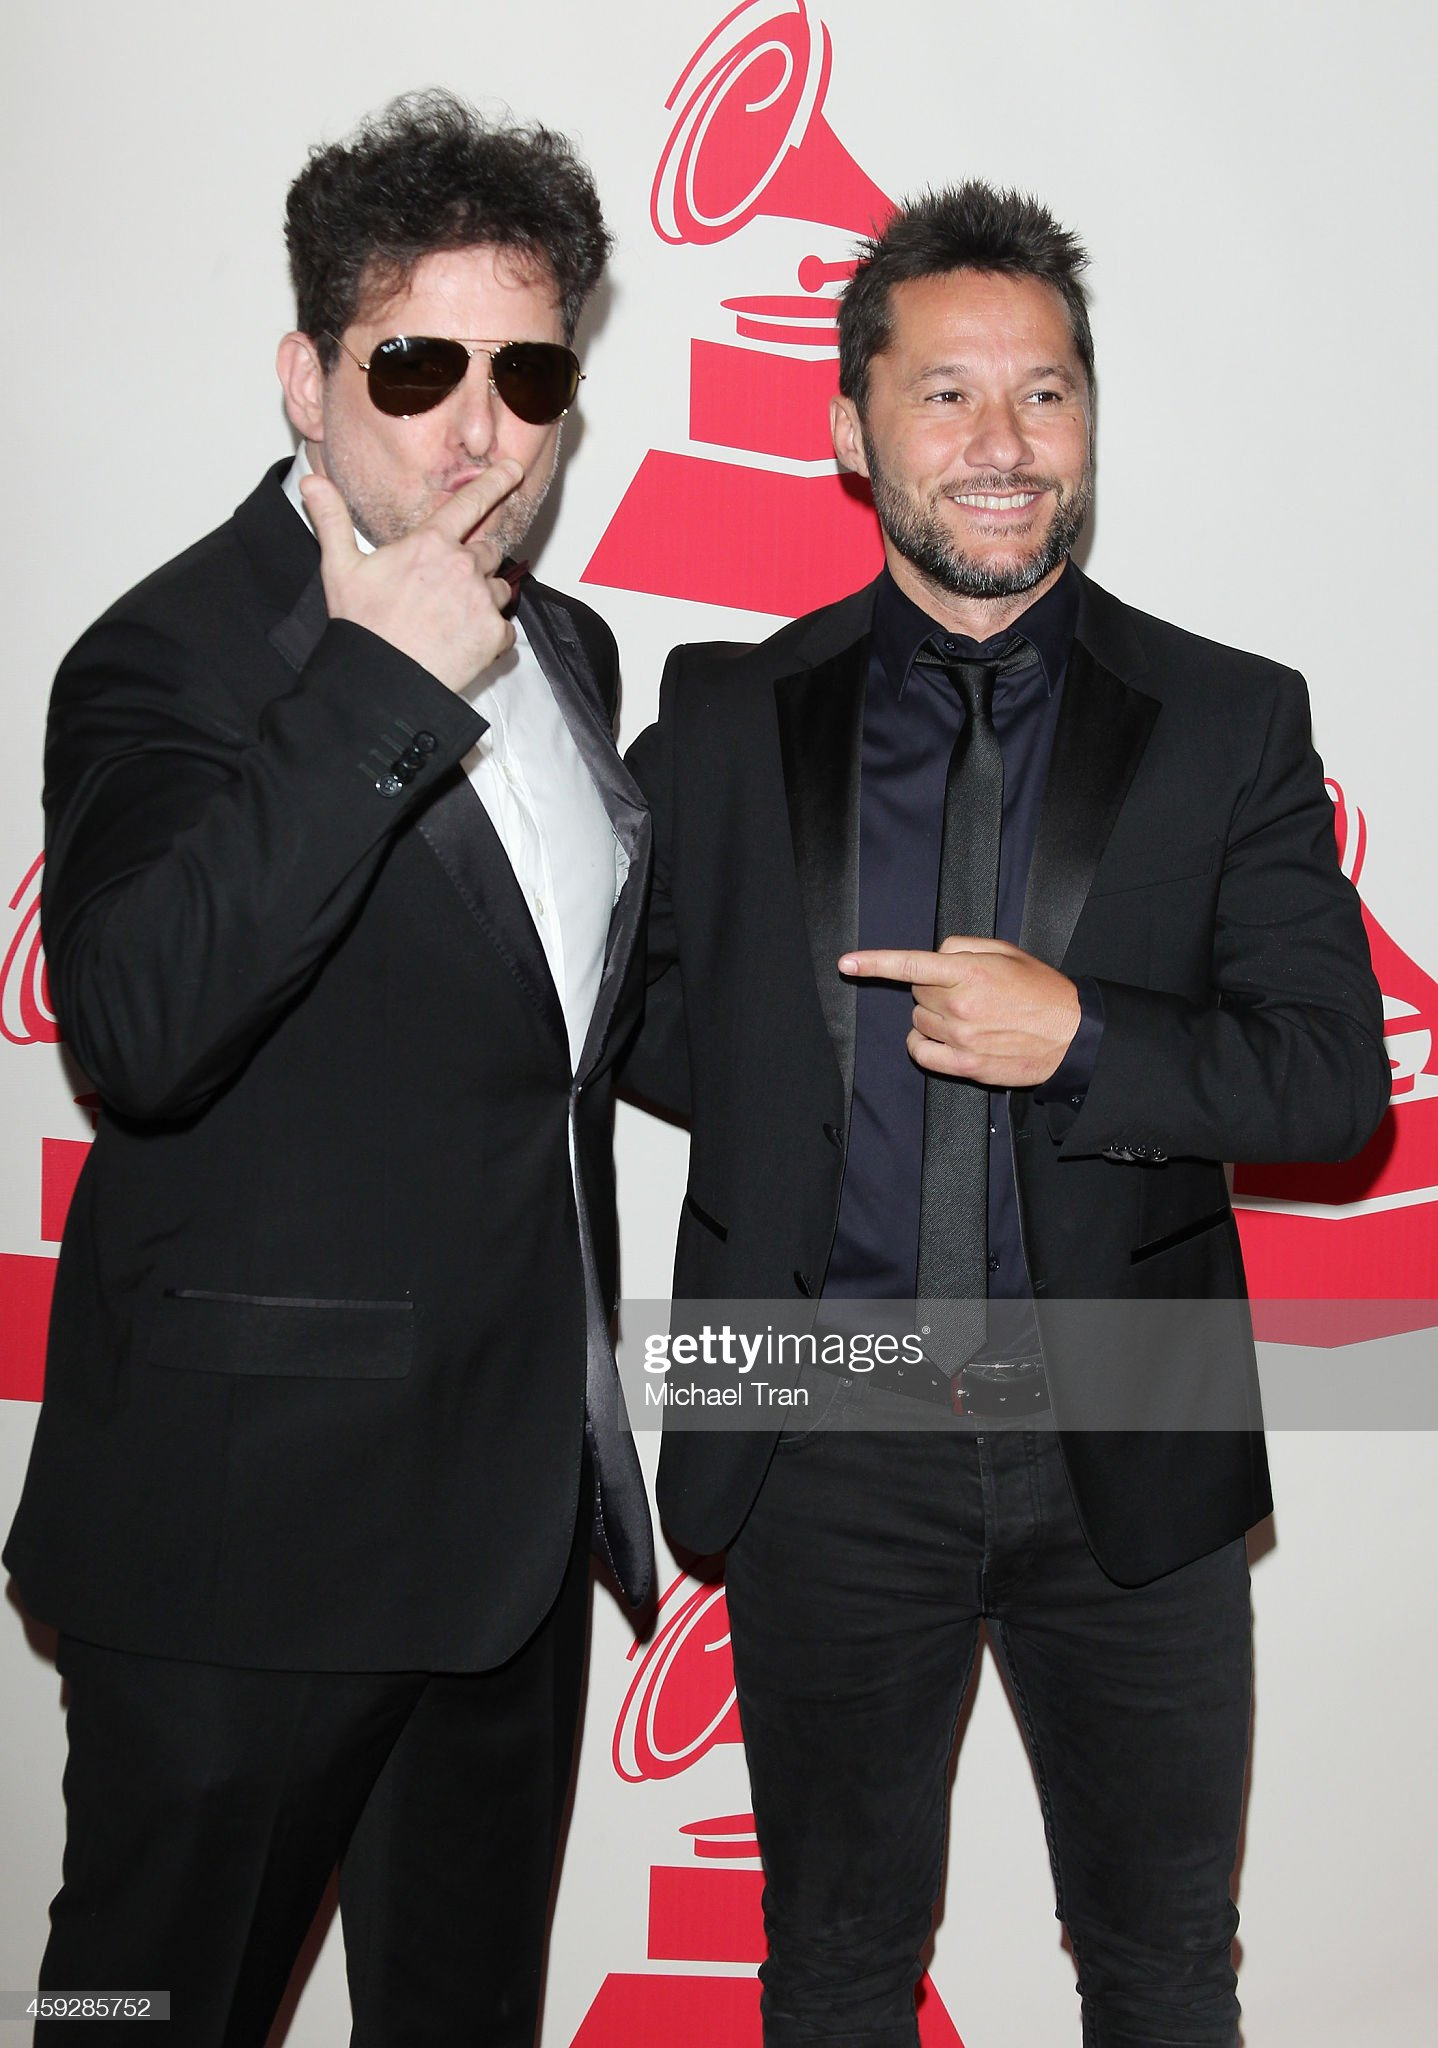 ¿Cuánto mide Diego Torres? - Altura Andres-calamaro-and-diego-torres-arrive-at-the-2014-person-of-the-picture-id459285752?s=2048x2048